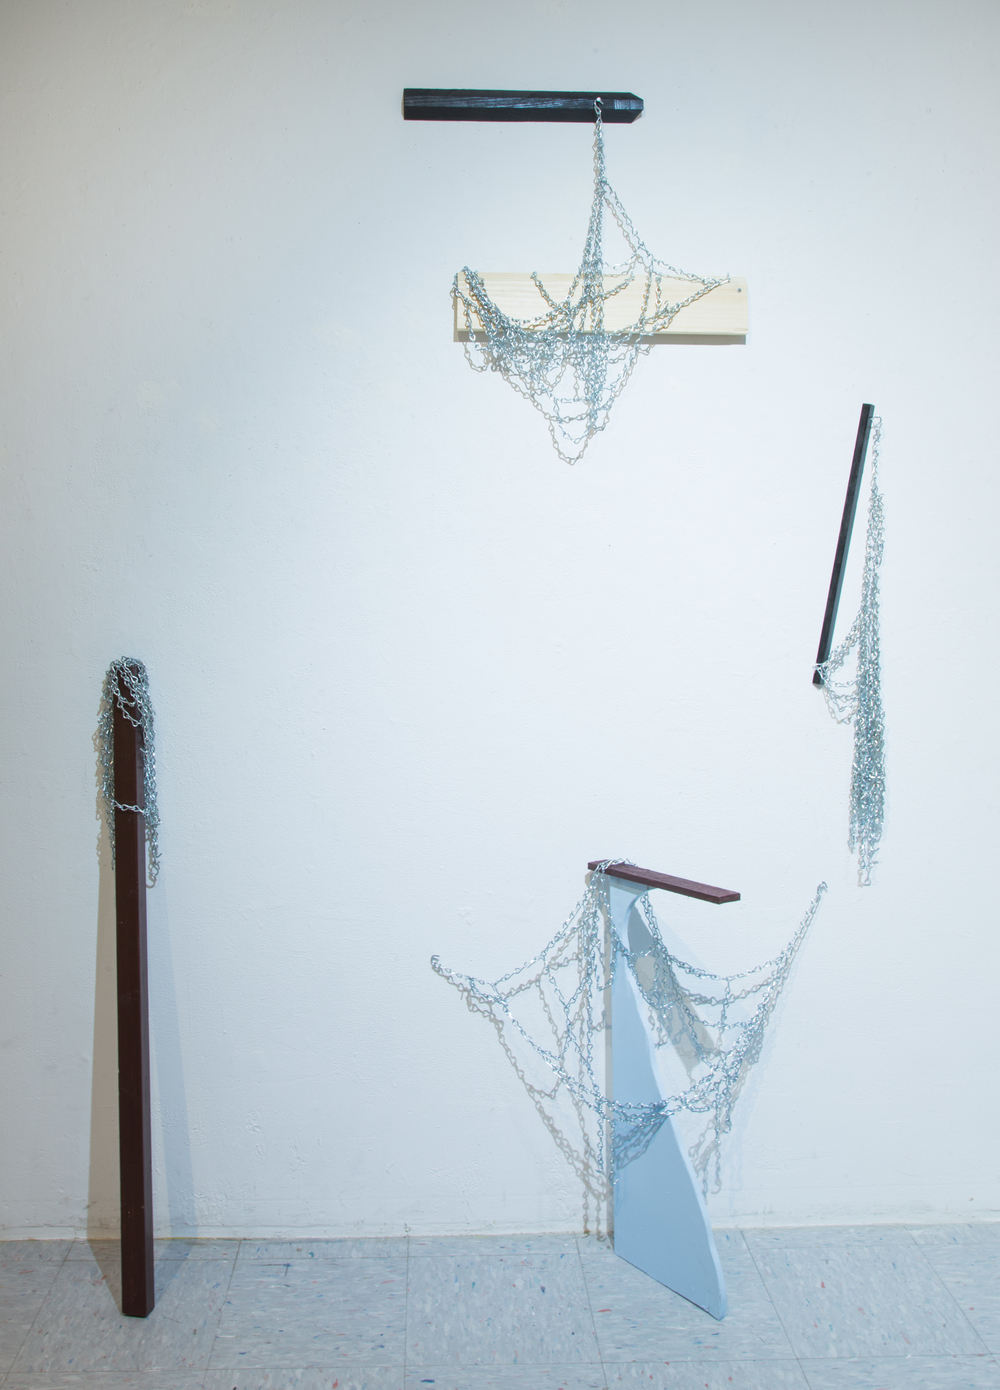 4 Sculptures - Pine, Basketbal Nets, 2016